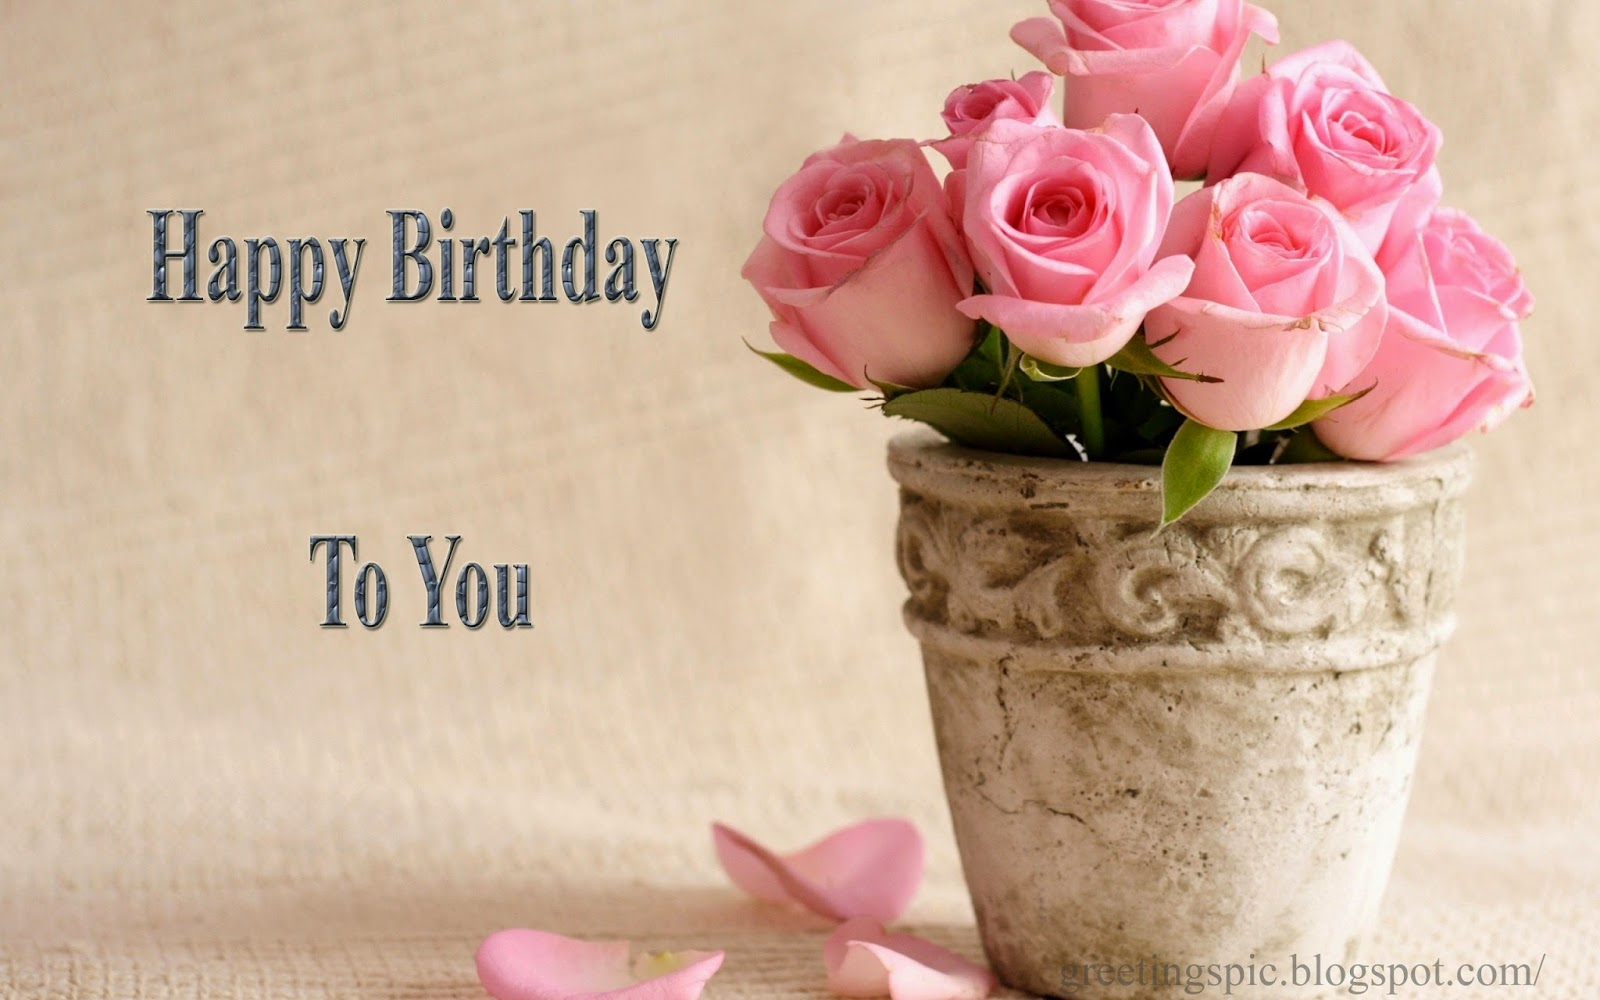 Happy birthday cake and flowers images greetings wishes images happy birthday rose flowers images izmirmasajfo